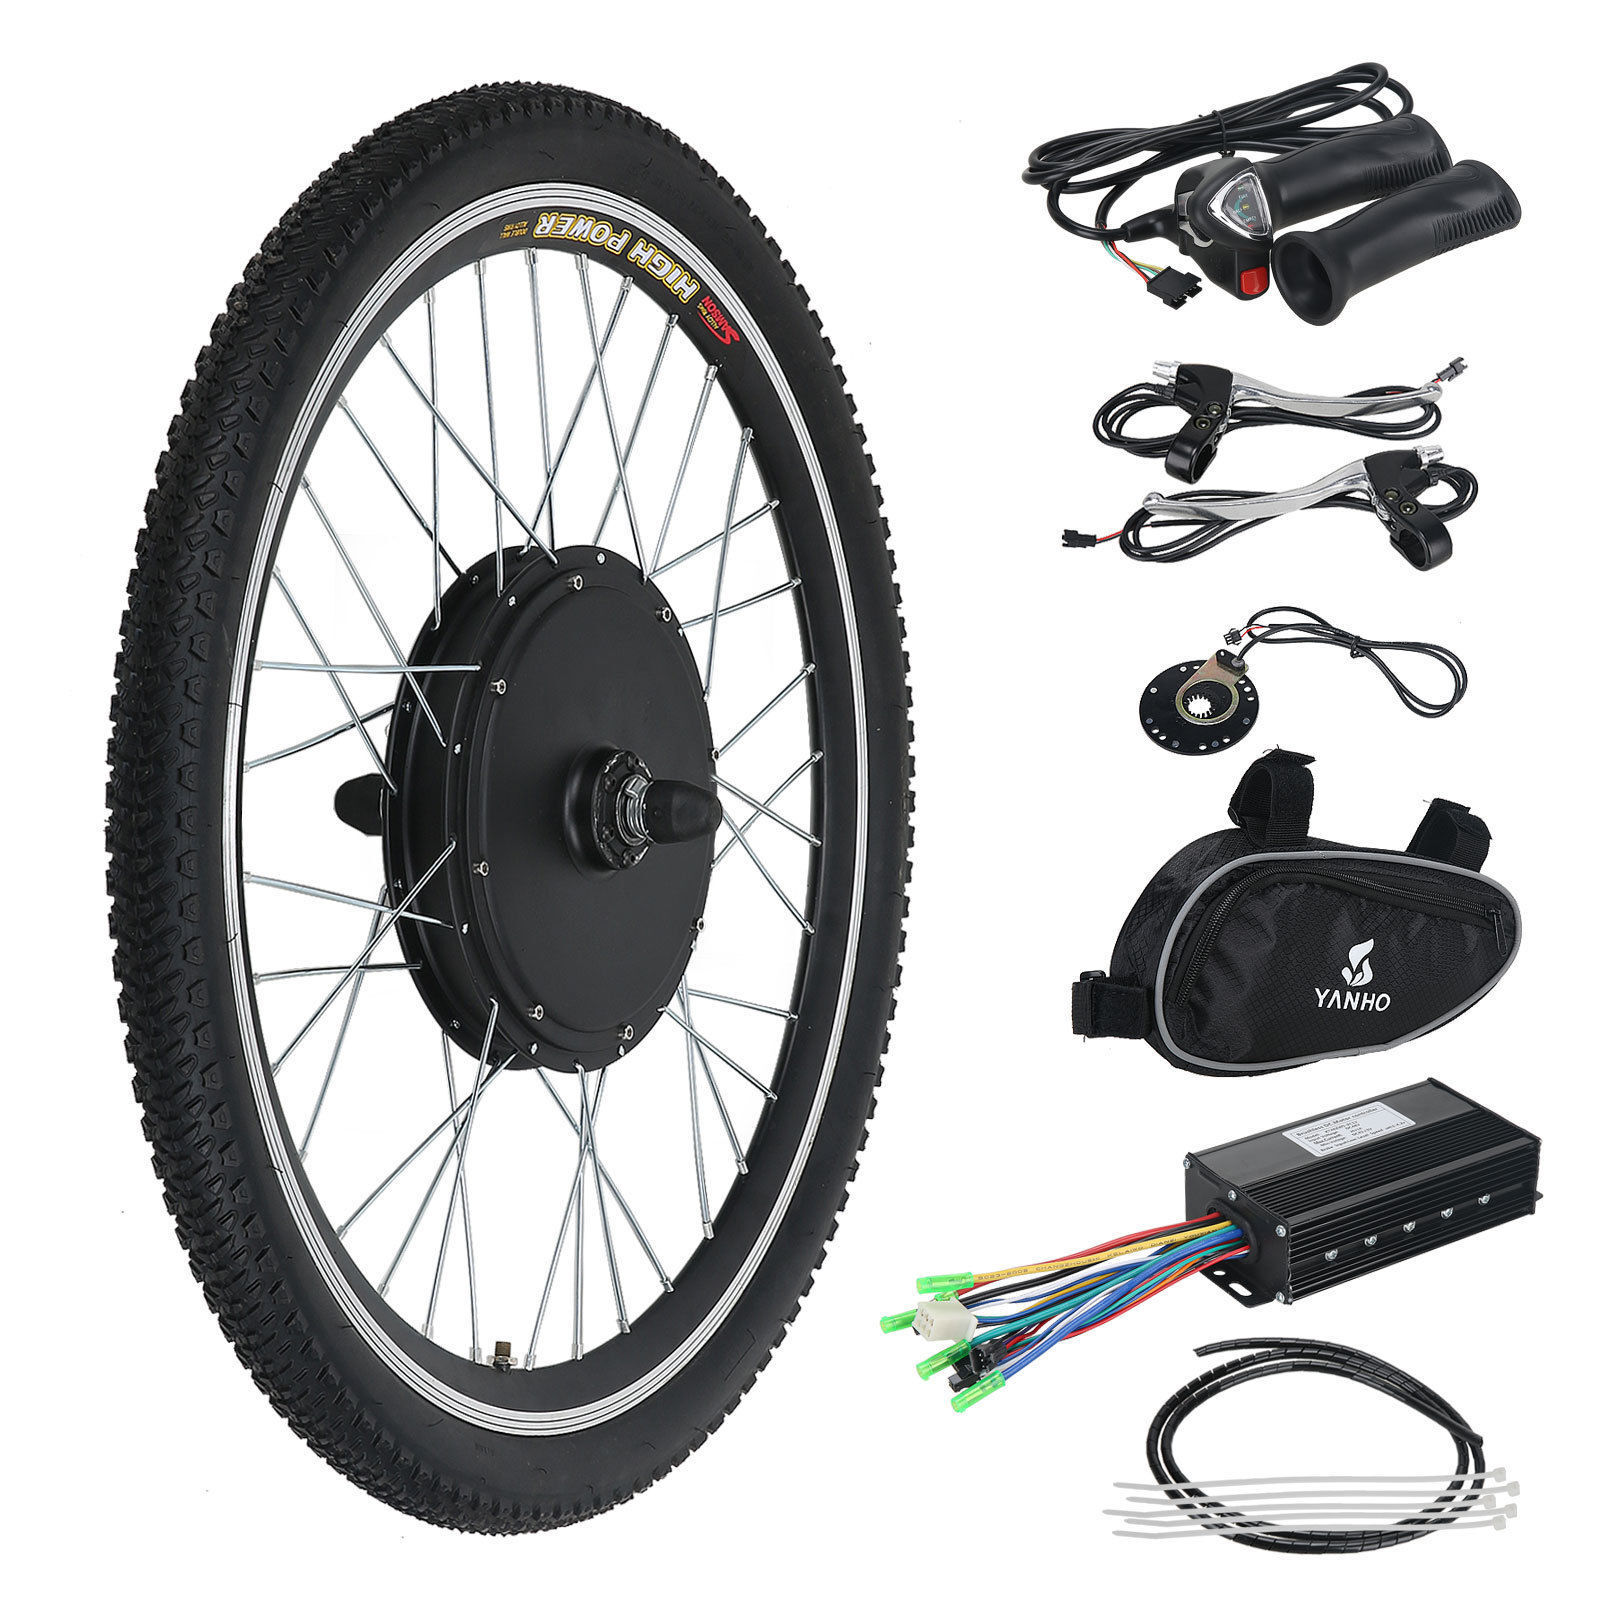 48v 1000w 26inch Hight Speed Scooter Electric Bicycle E-bike Hub Motor Conversion Kit In Short Supply Lcd Automobiles & Motorcycles